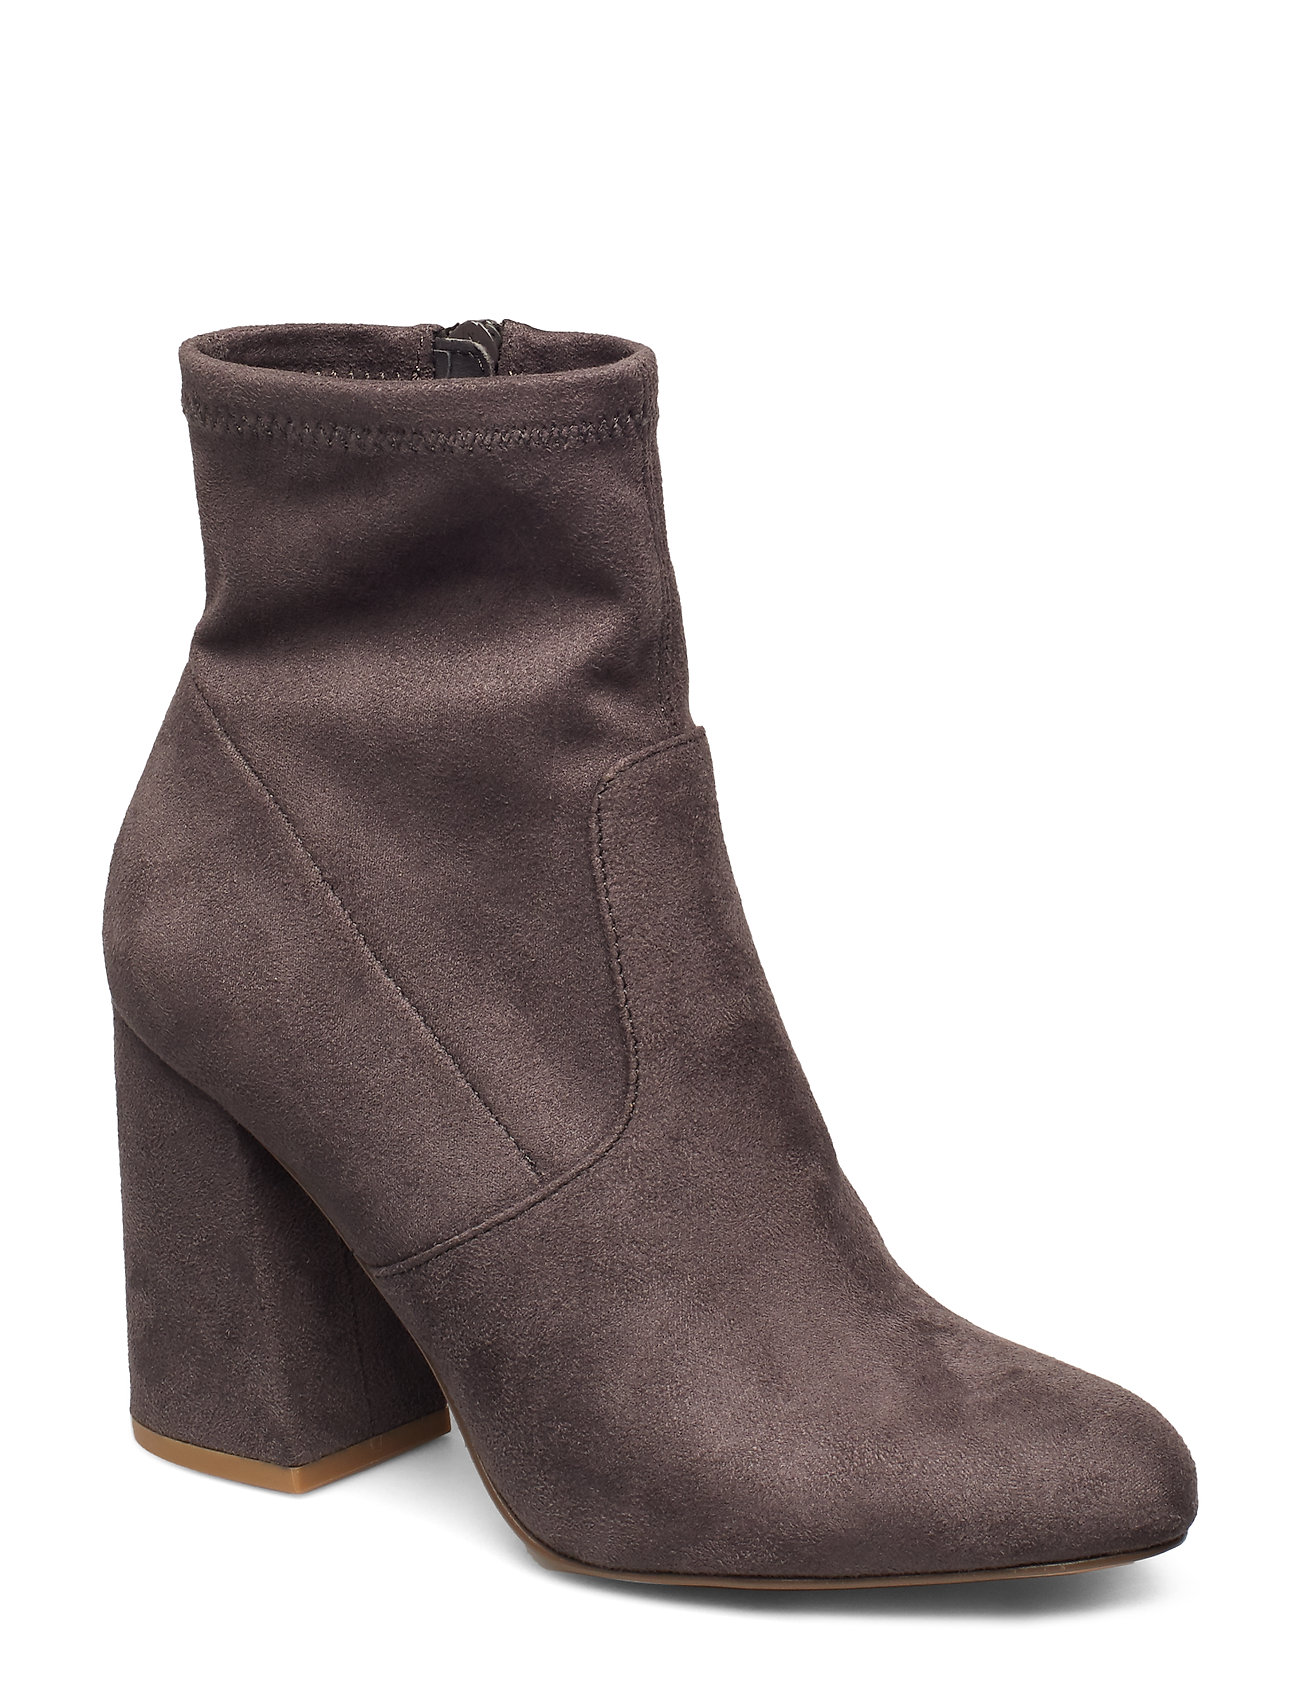 Image of Expert Bootie Shoes Boots Ankle Boots Ankle Boot - Heel Brun Steve Madden (3406217667)